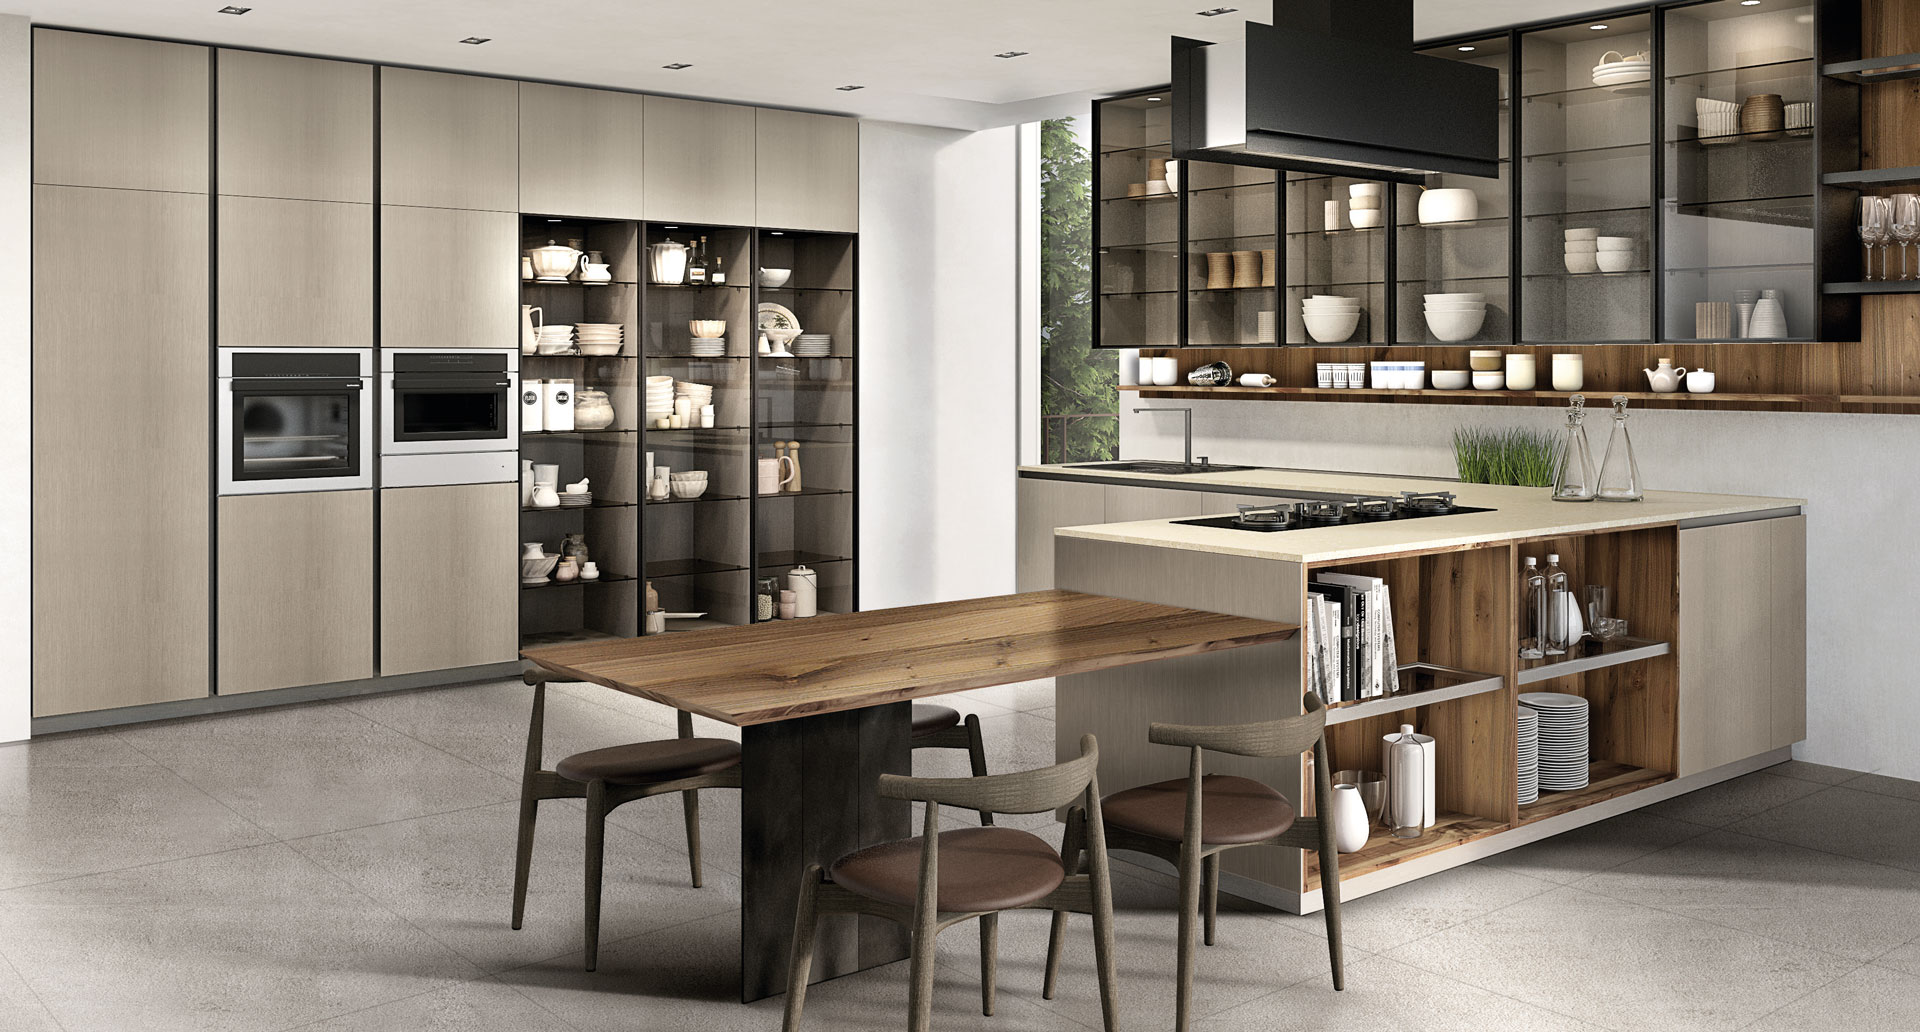 Home is where the kitchen is - homestyleblogs.com